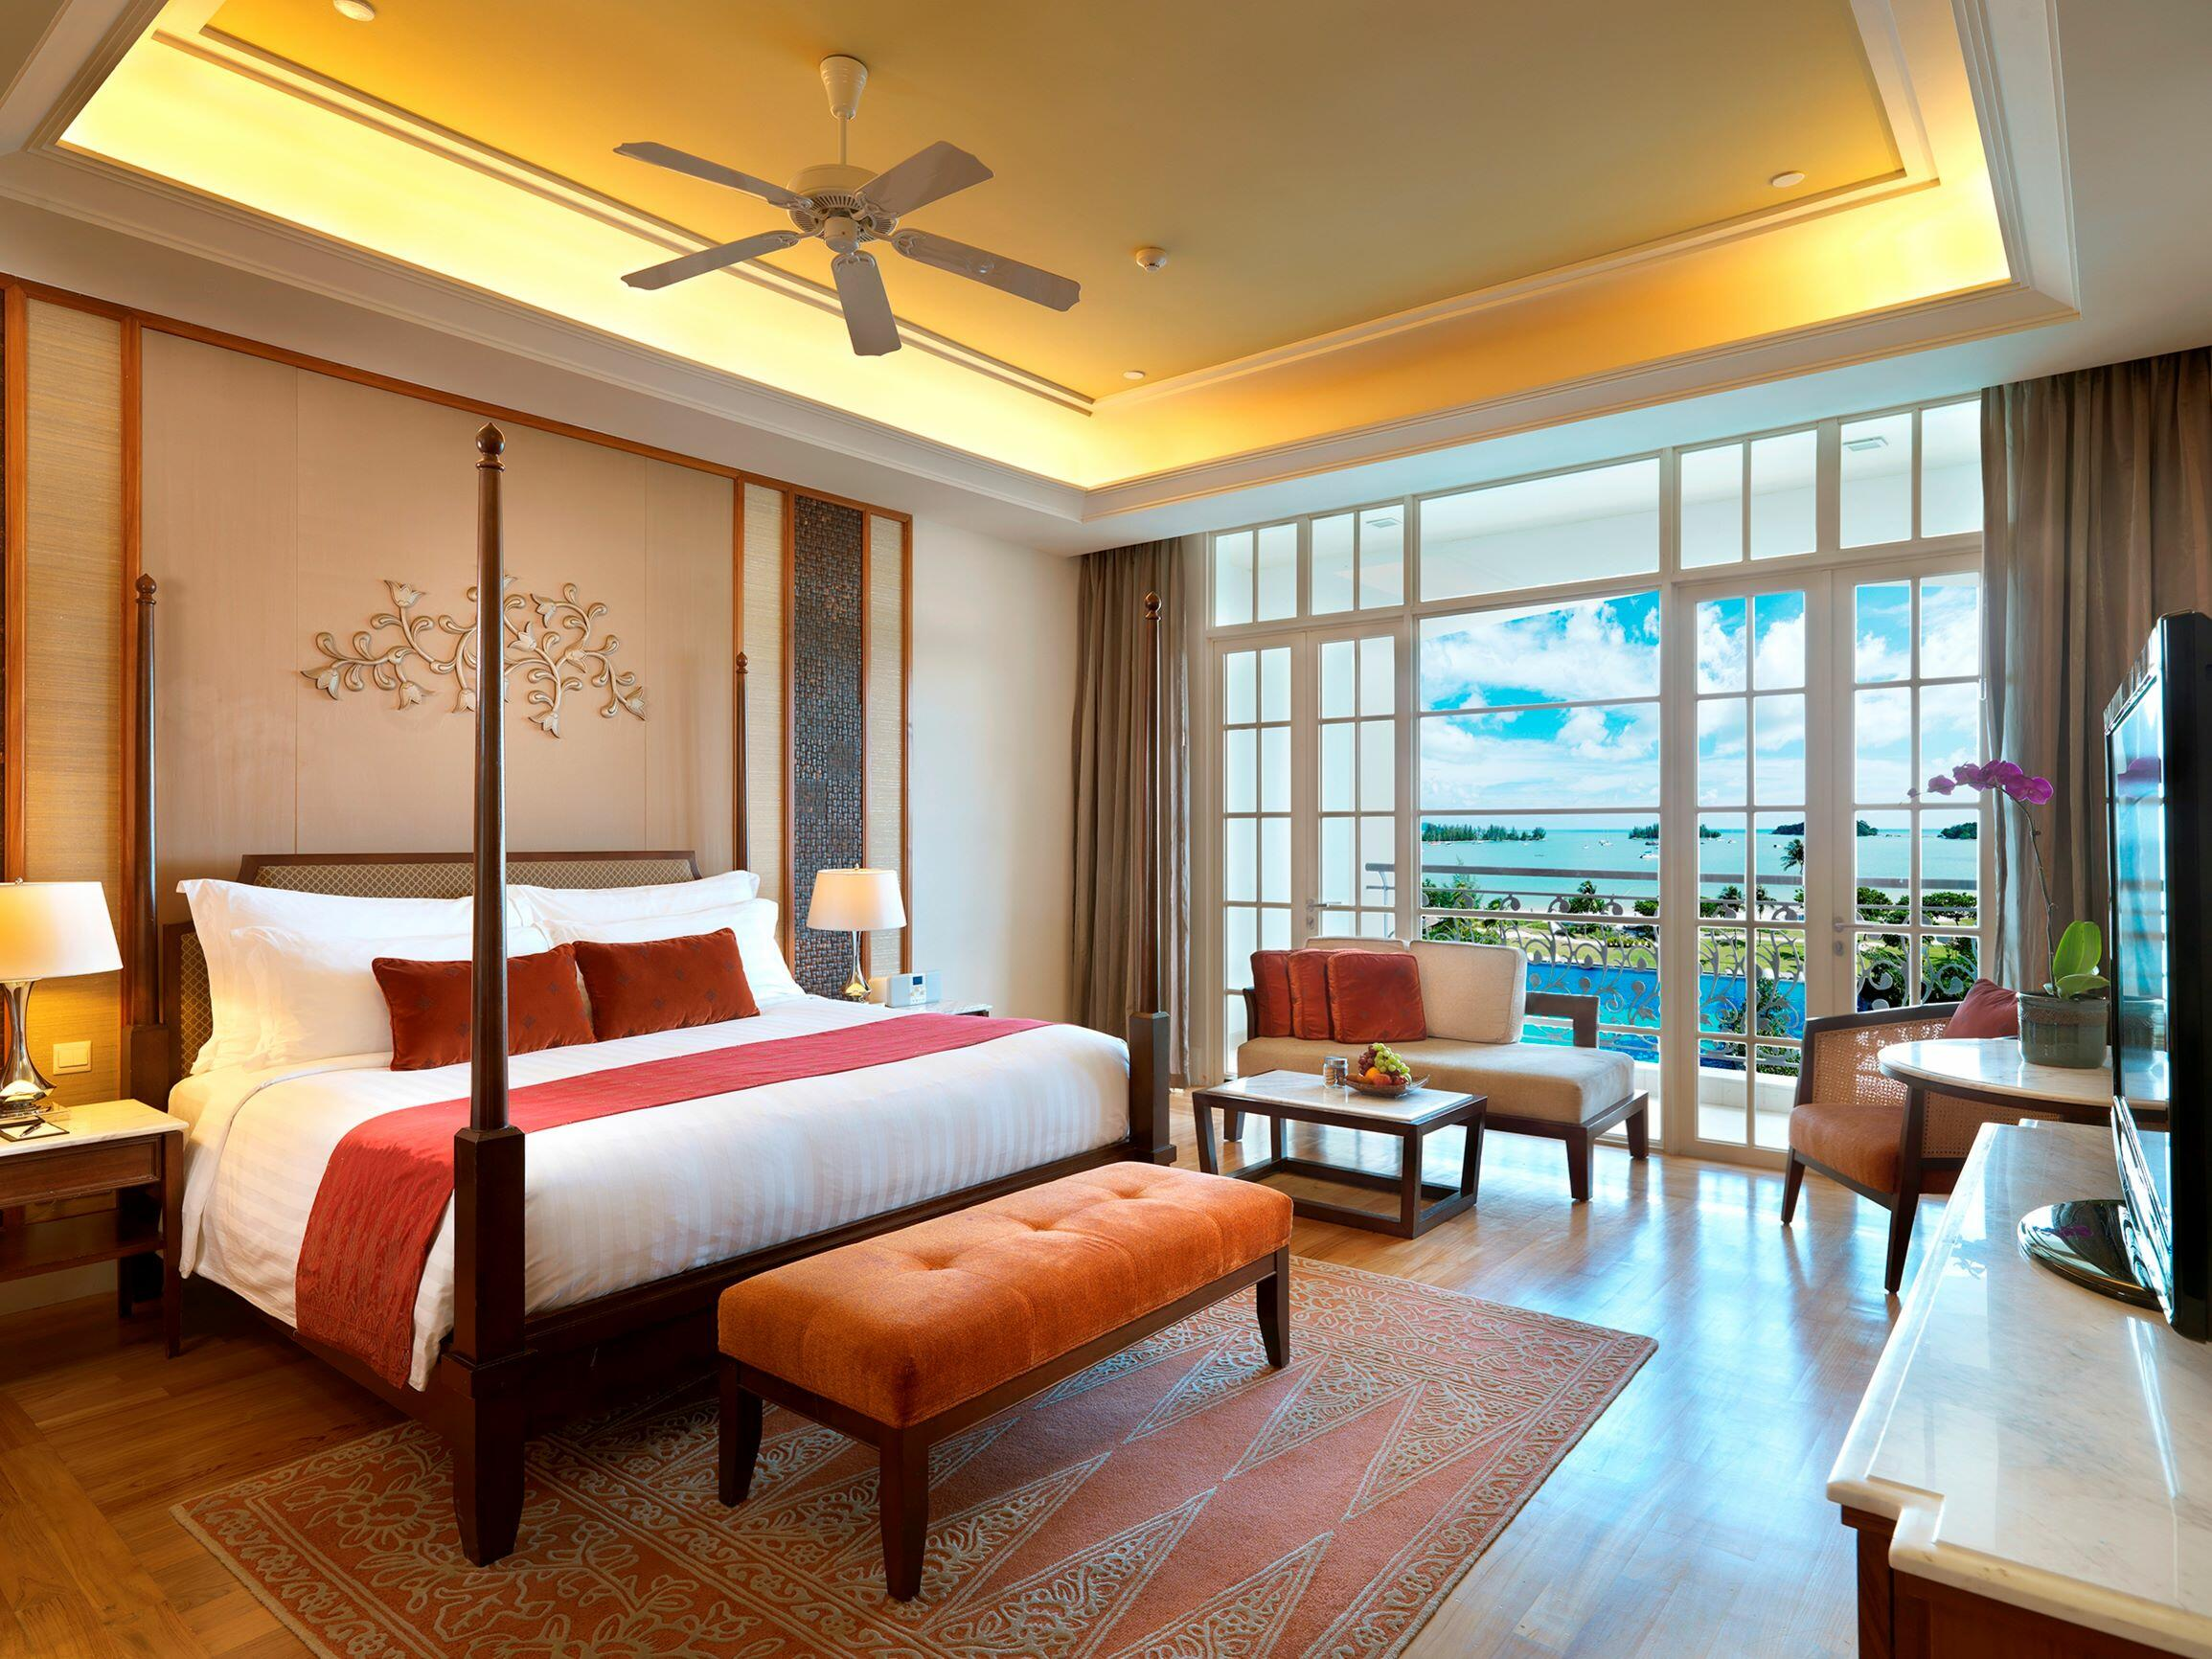 Room with pool and beach view